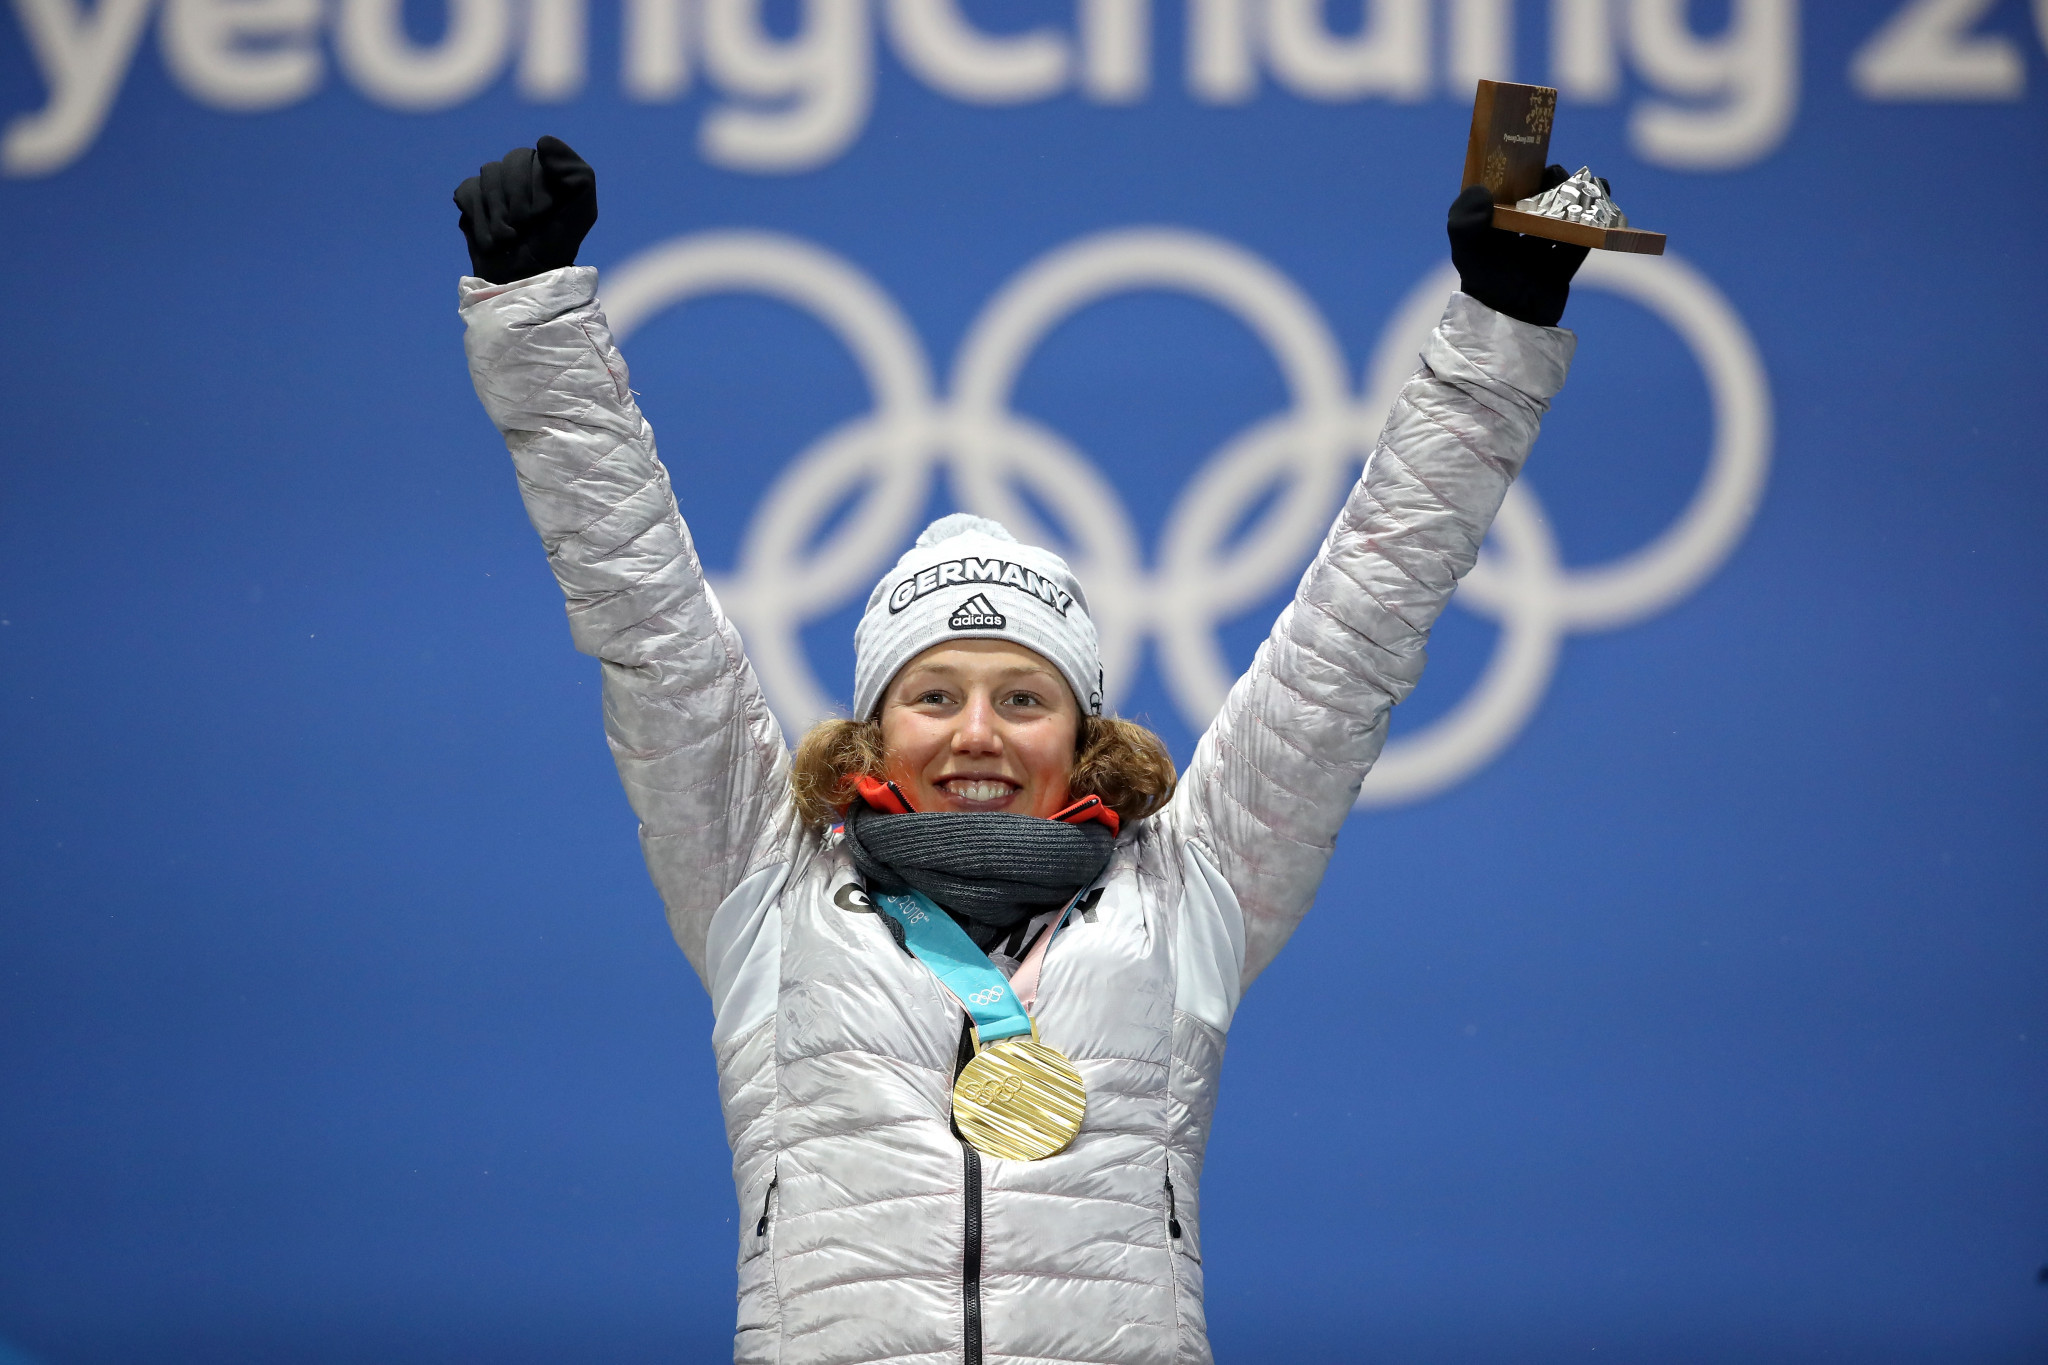 Laura Dahlmeier celebrates her Olympic gold medal in the pursuit at Pyeongchang 2018 ©Getty Images